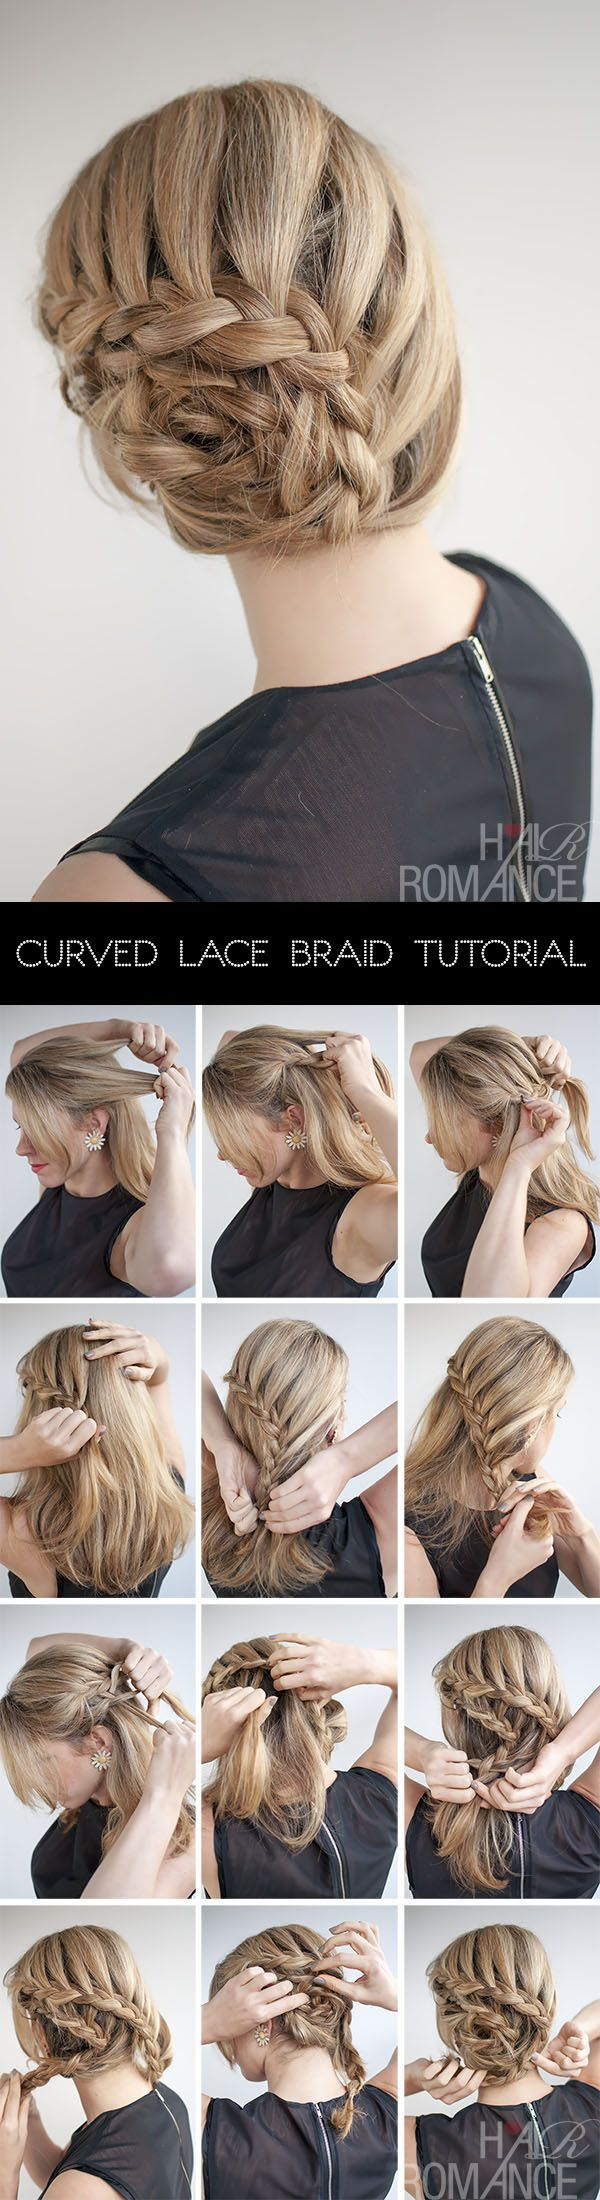 Curved lace braid updo hairstyle tutorial looking for a unique